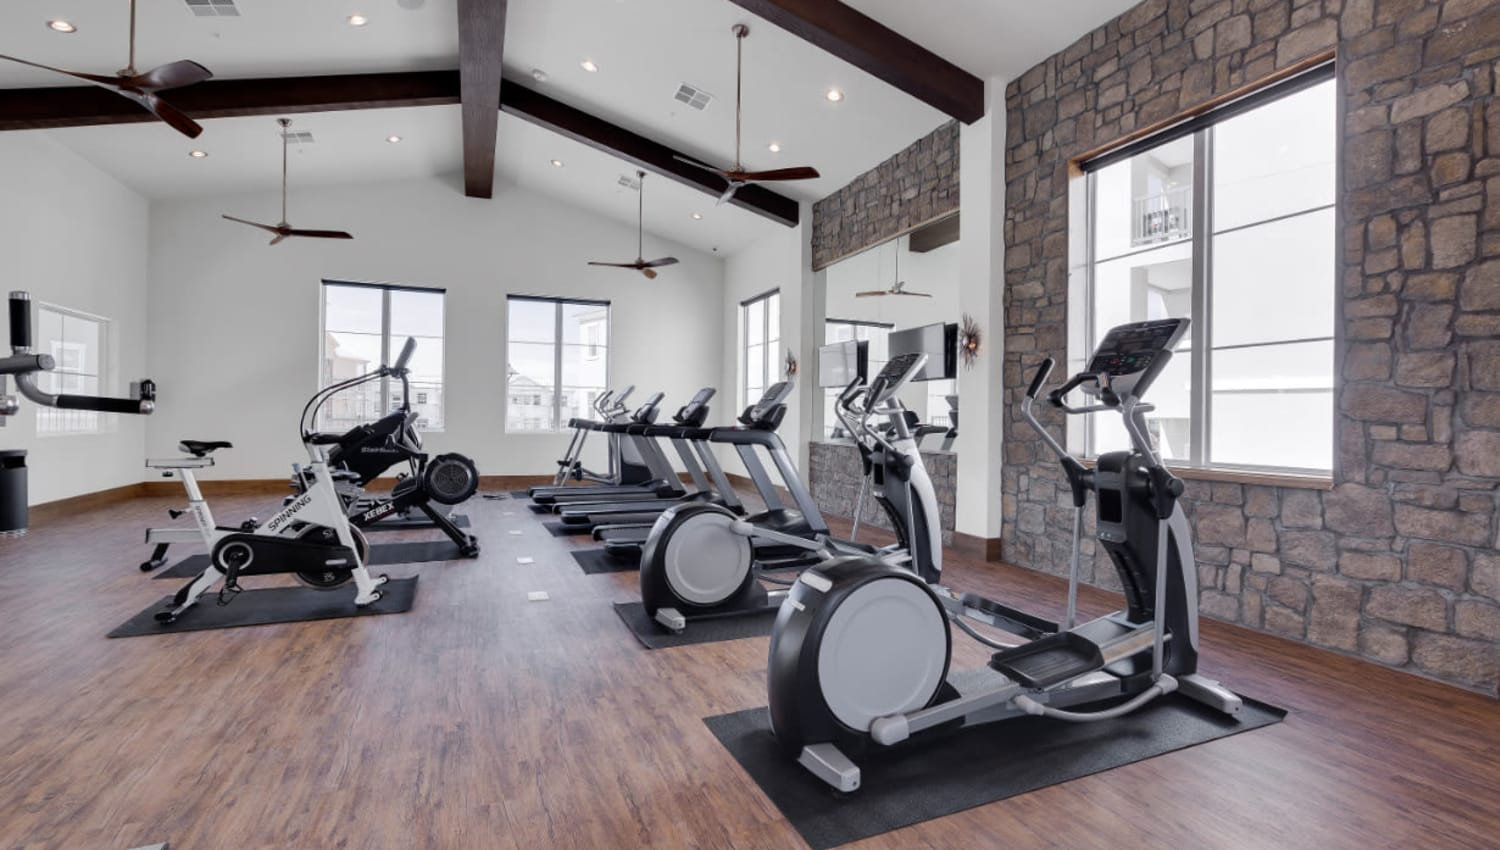 Spin class room at Olympus Rodeo in Santa Fe, New Mexico